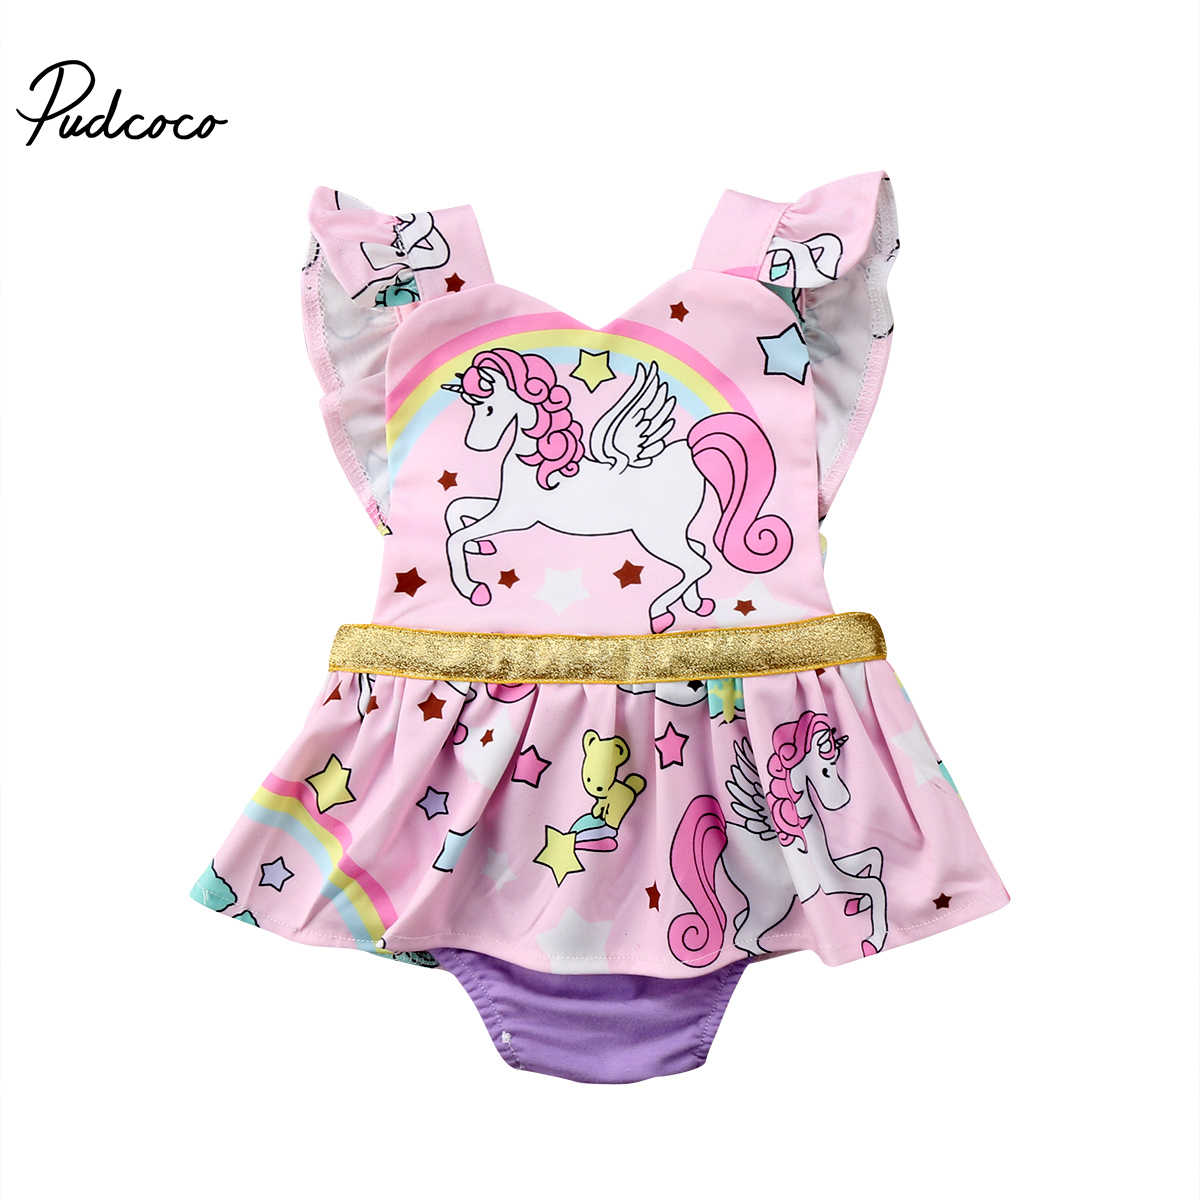 5b55dc281fd14 Detail Feedback Questions about 2018 Brand New Newborn Toddler Infant Baby  Girl Unicorn Romper Jumpsuit Dress Cartoon Clothes Outfits Summer Sleeveless  ...